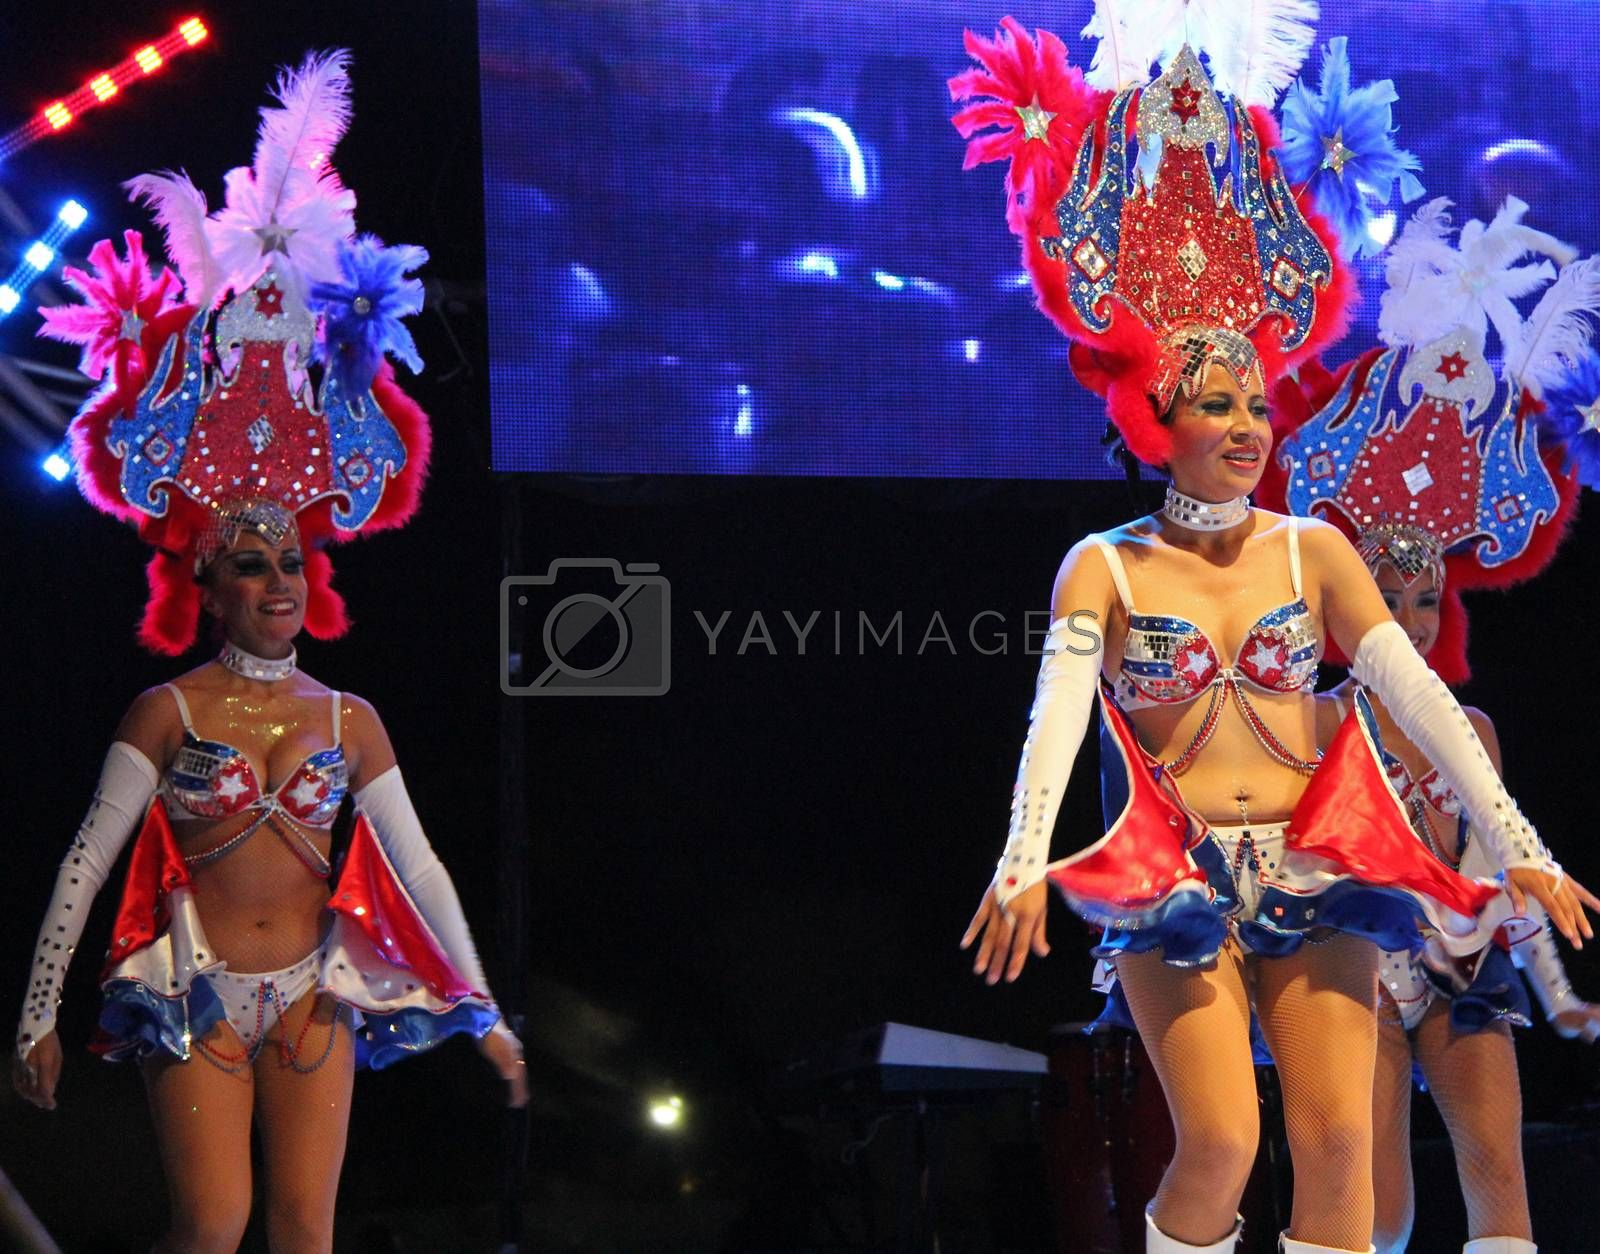 Royalty free image of Carnaval by photocdn39